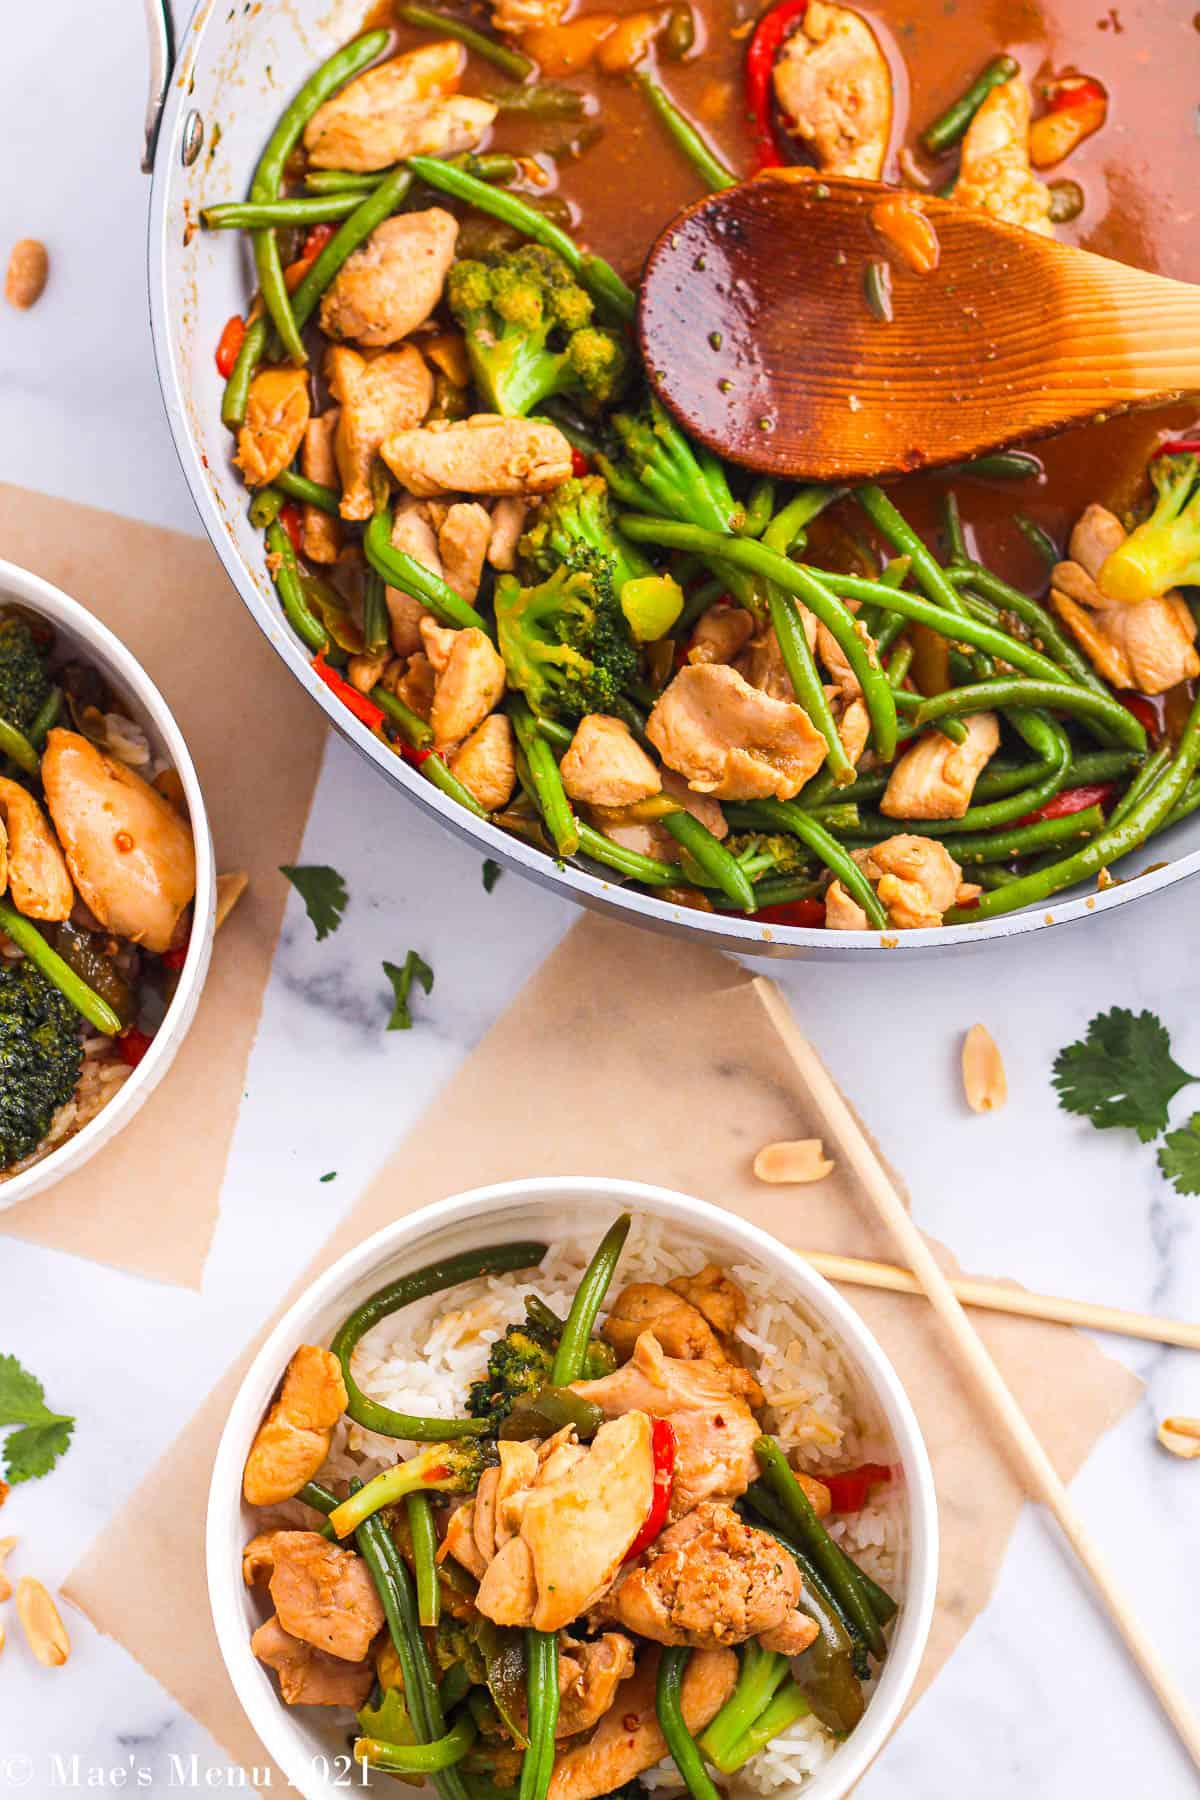 An overhead shot of a pan and 2 bowls of chicken stir-fry